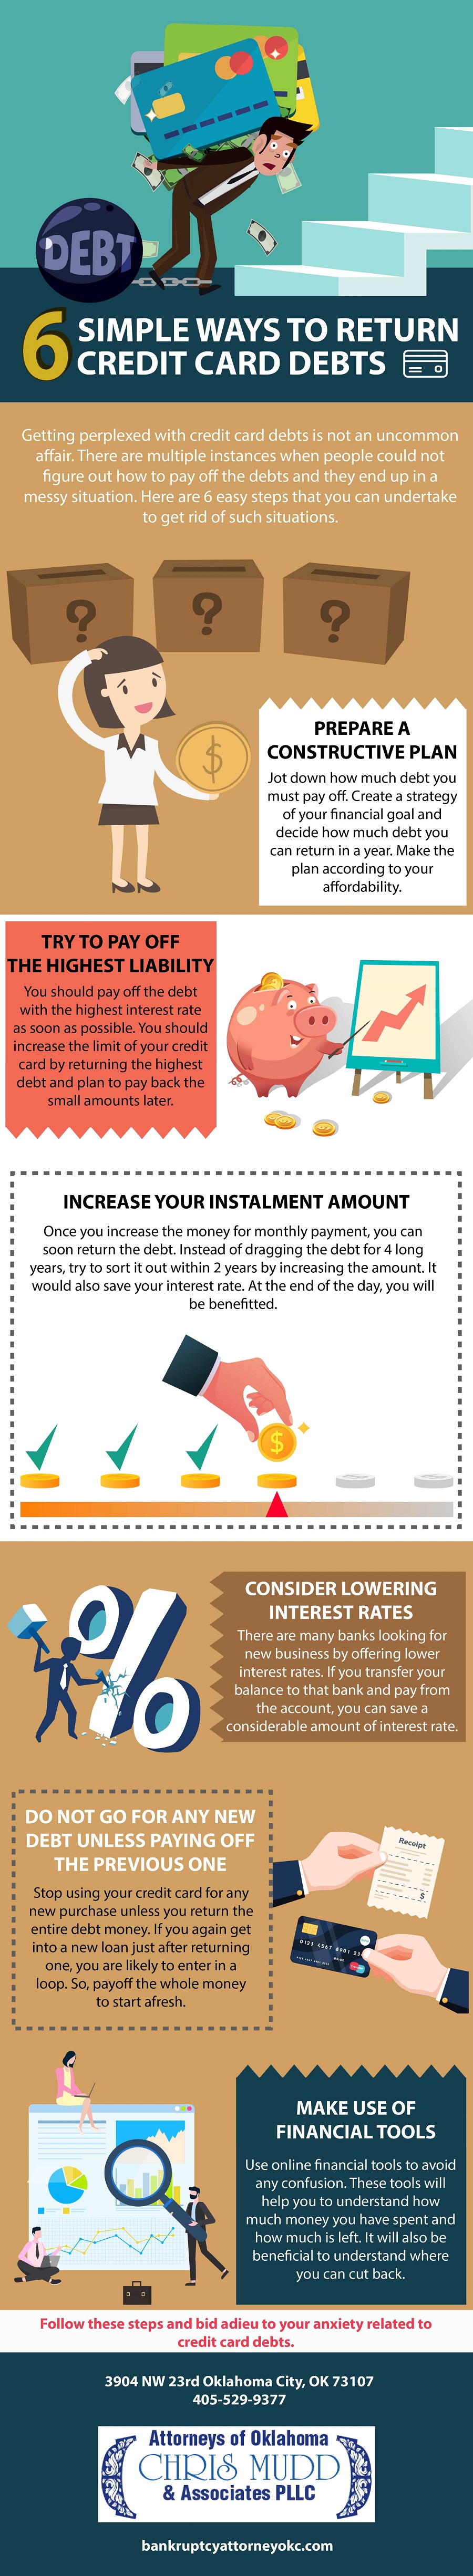 6 Simple Ways To Return Credit Card Debts